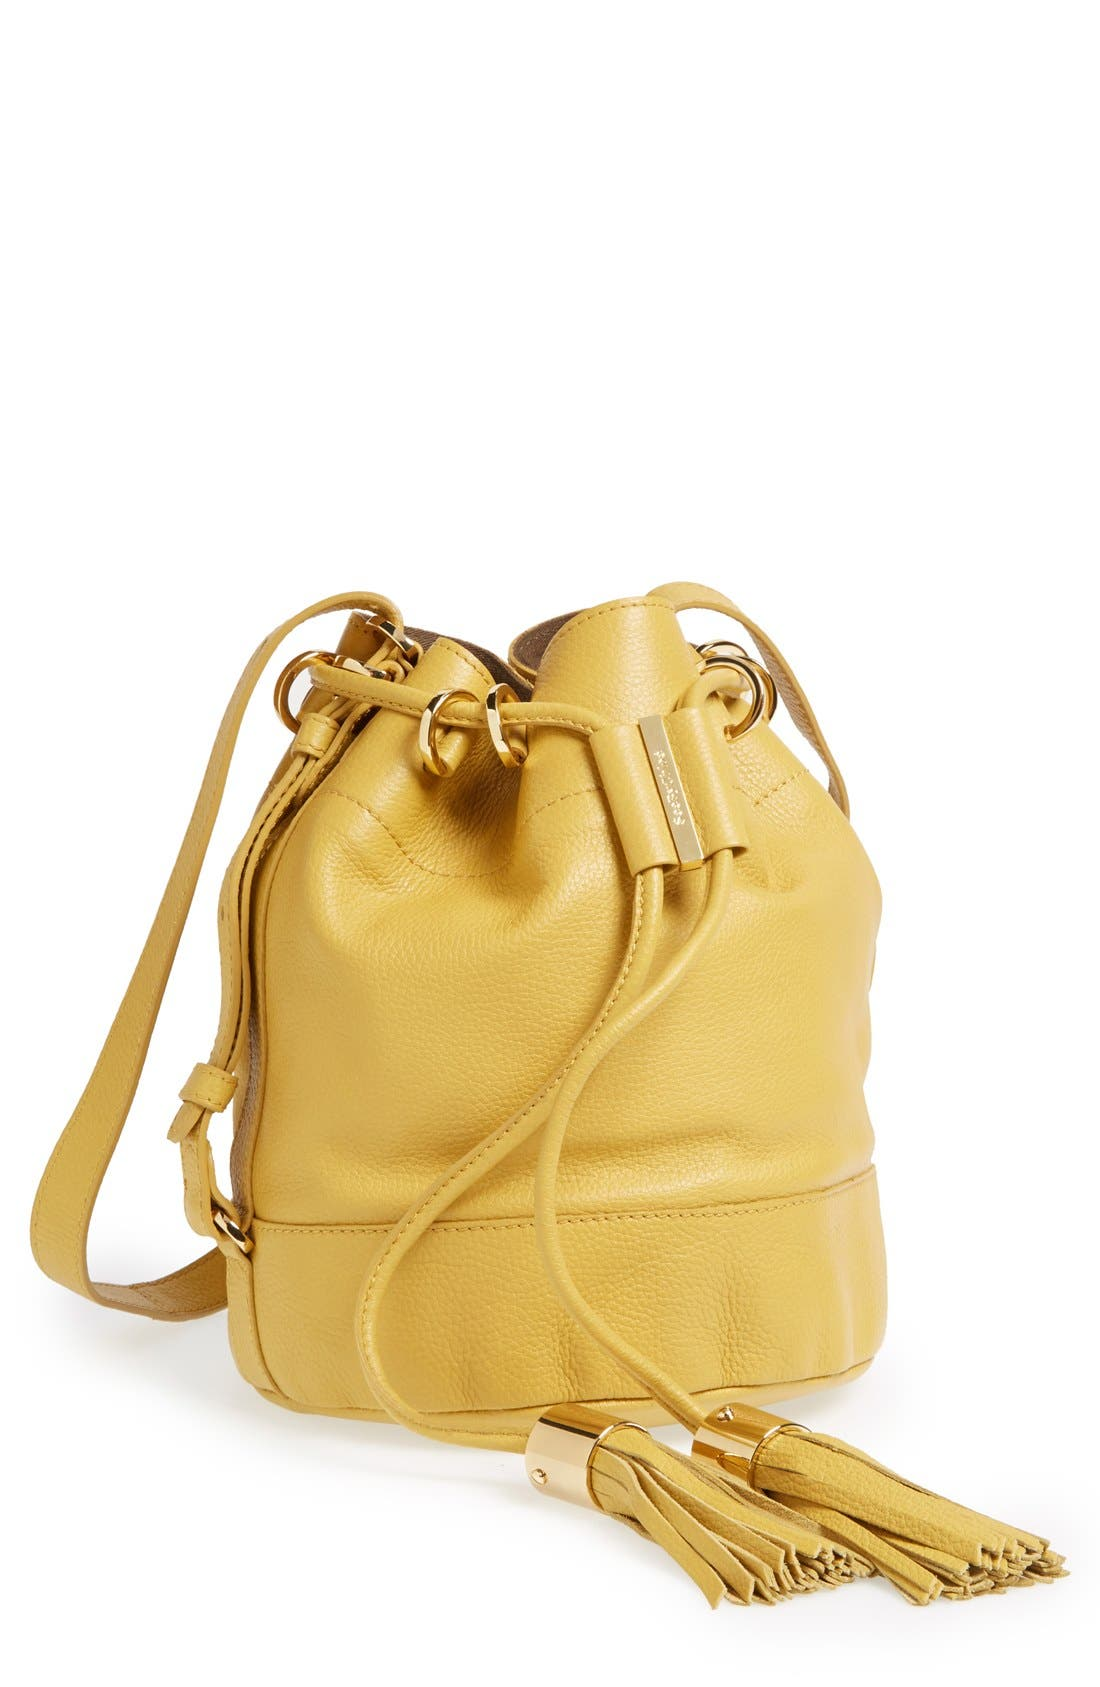 Alternate Image 1 Selected - See by Chloé 'Small Vicki' Leather Bucket Bag